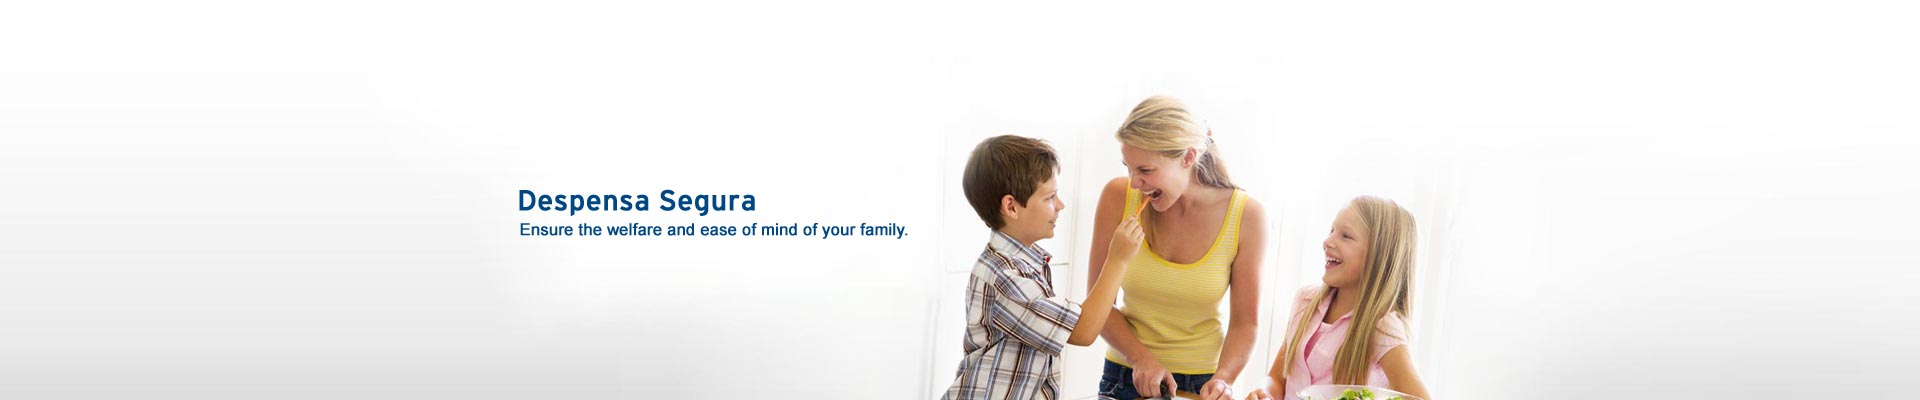 Ensure the welfare and ease of mind of your family